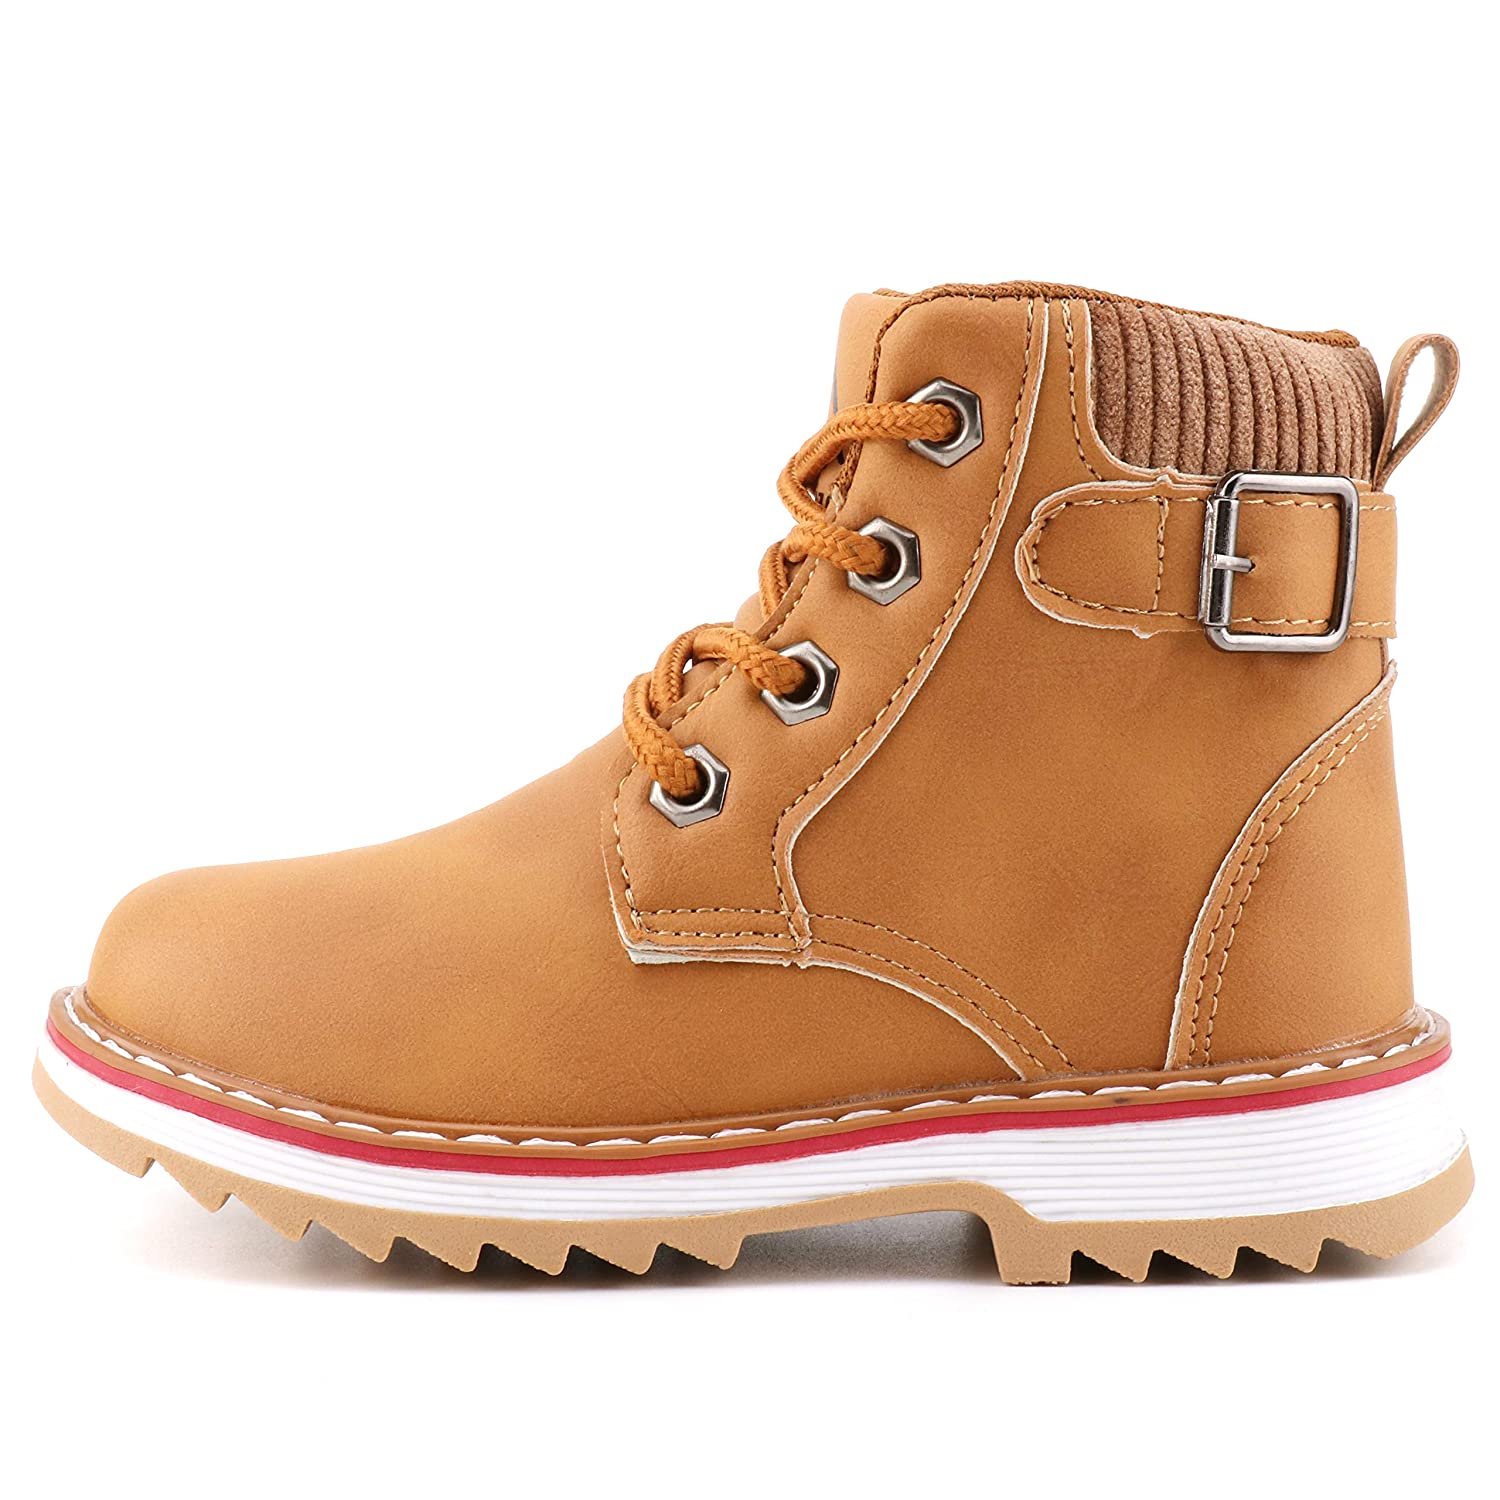 70306c5bf3c Femizee Boys Lace Up Work Boots Classic Waterproof Hiking Booties ...